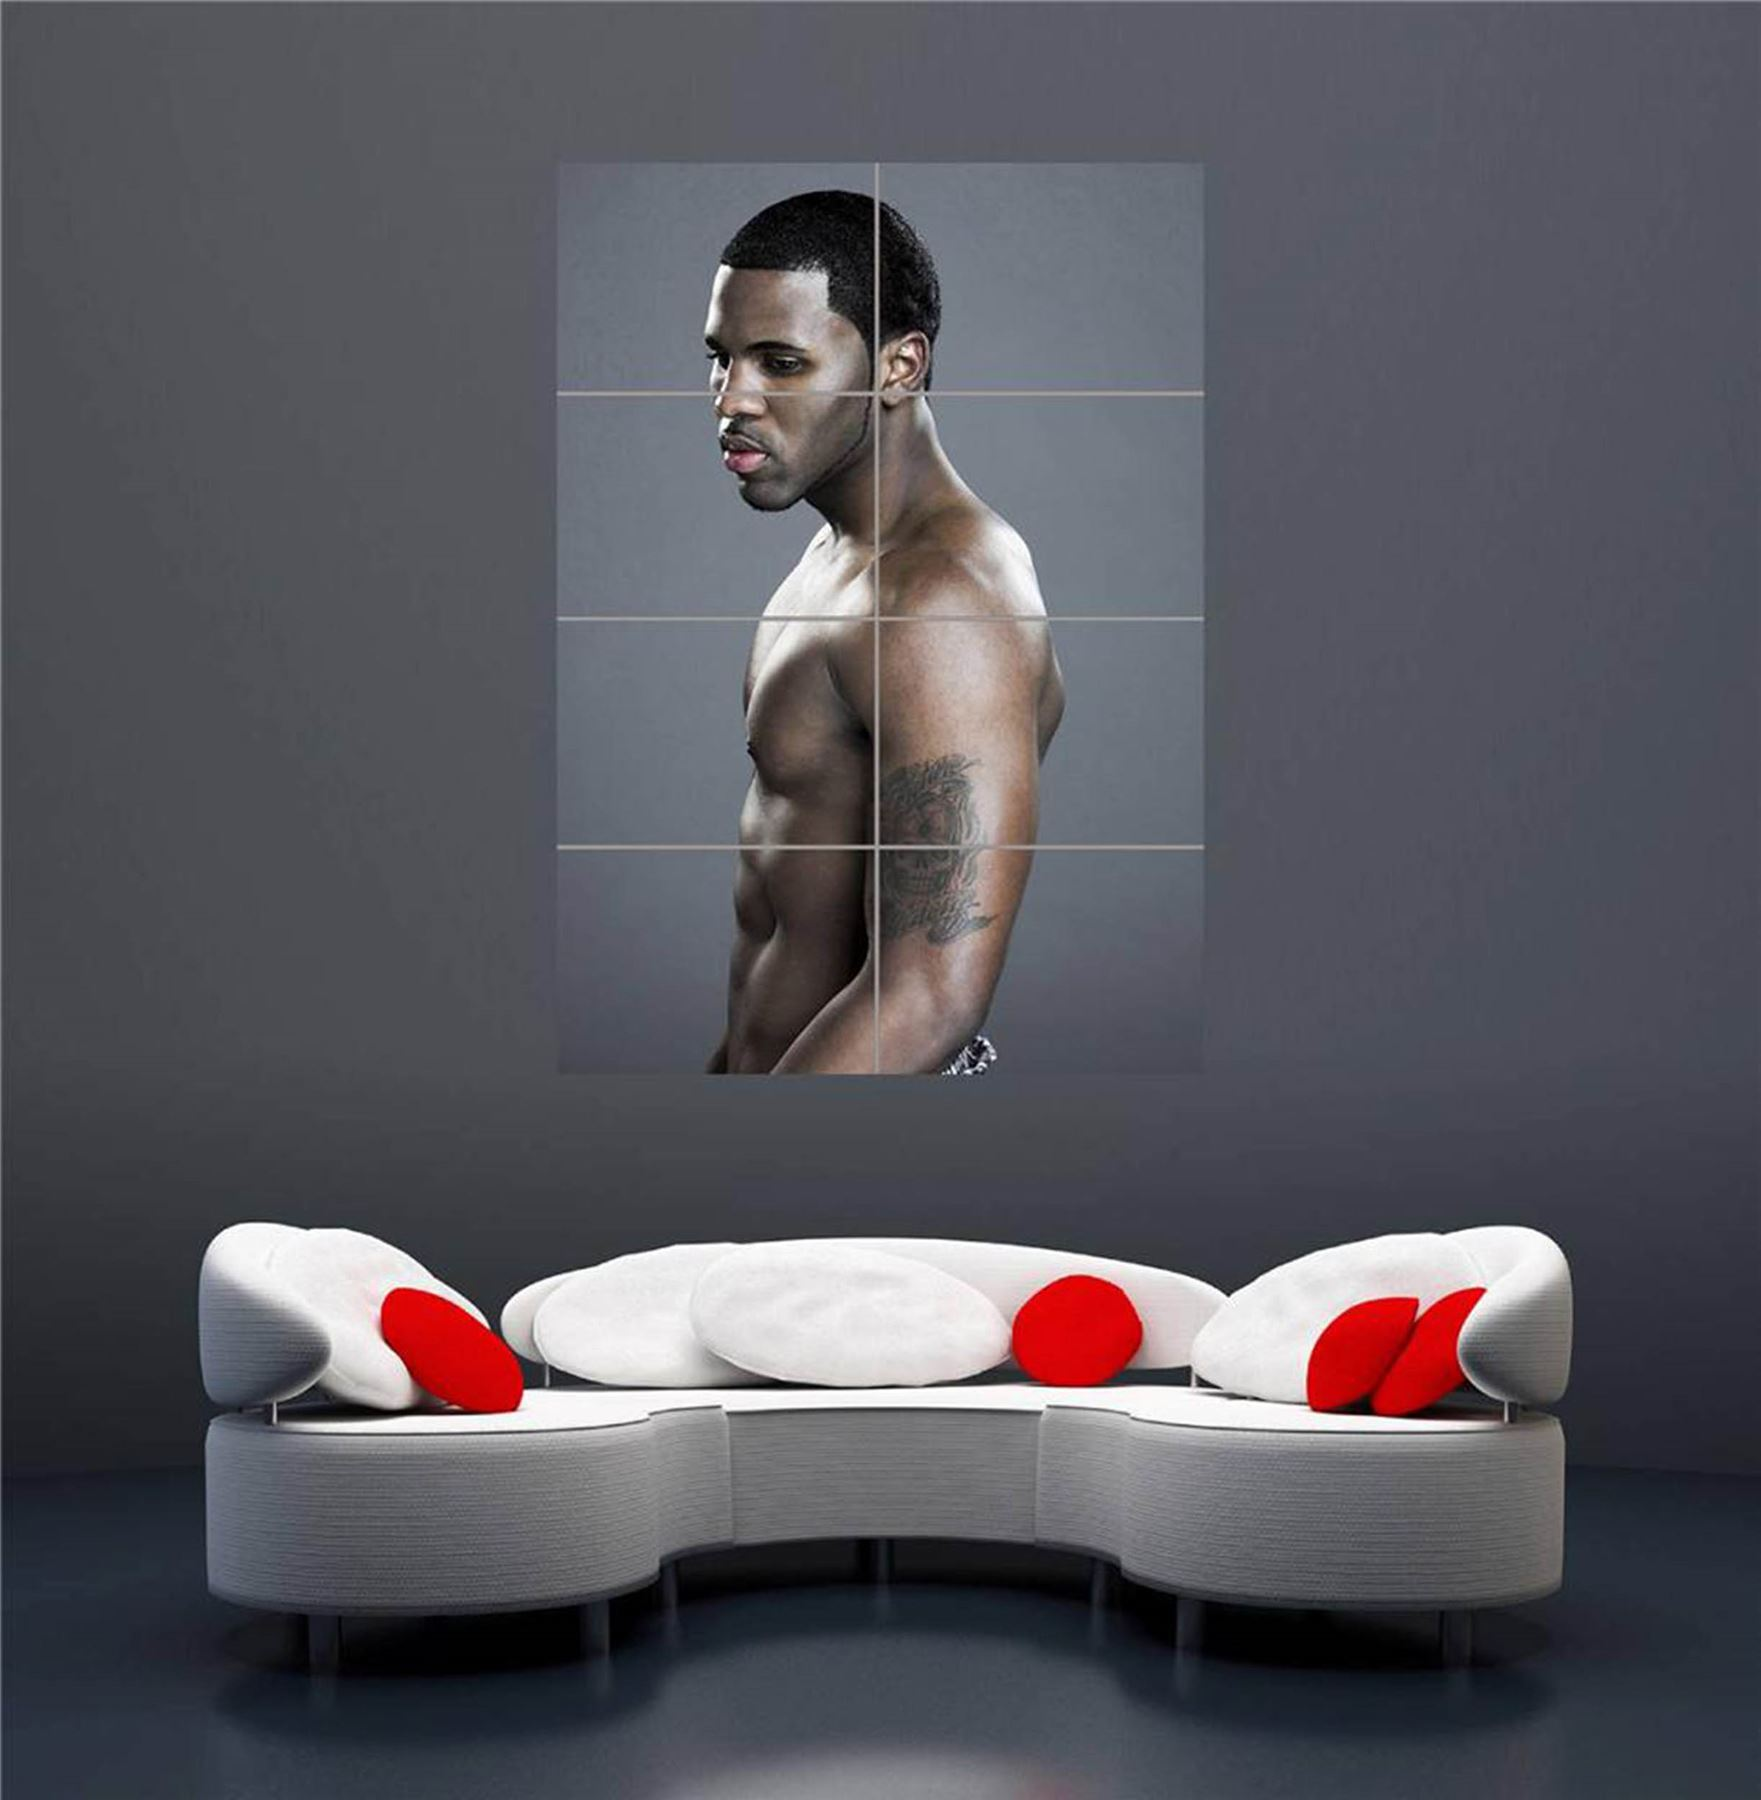 JASON-DERULO-SINGER-R-B-SONGWRITER-TOPLESS-GIANT-NEW-ART-PRINT-POSTER-OZ270